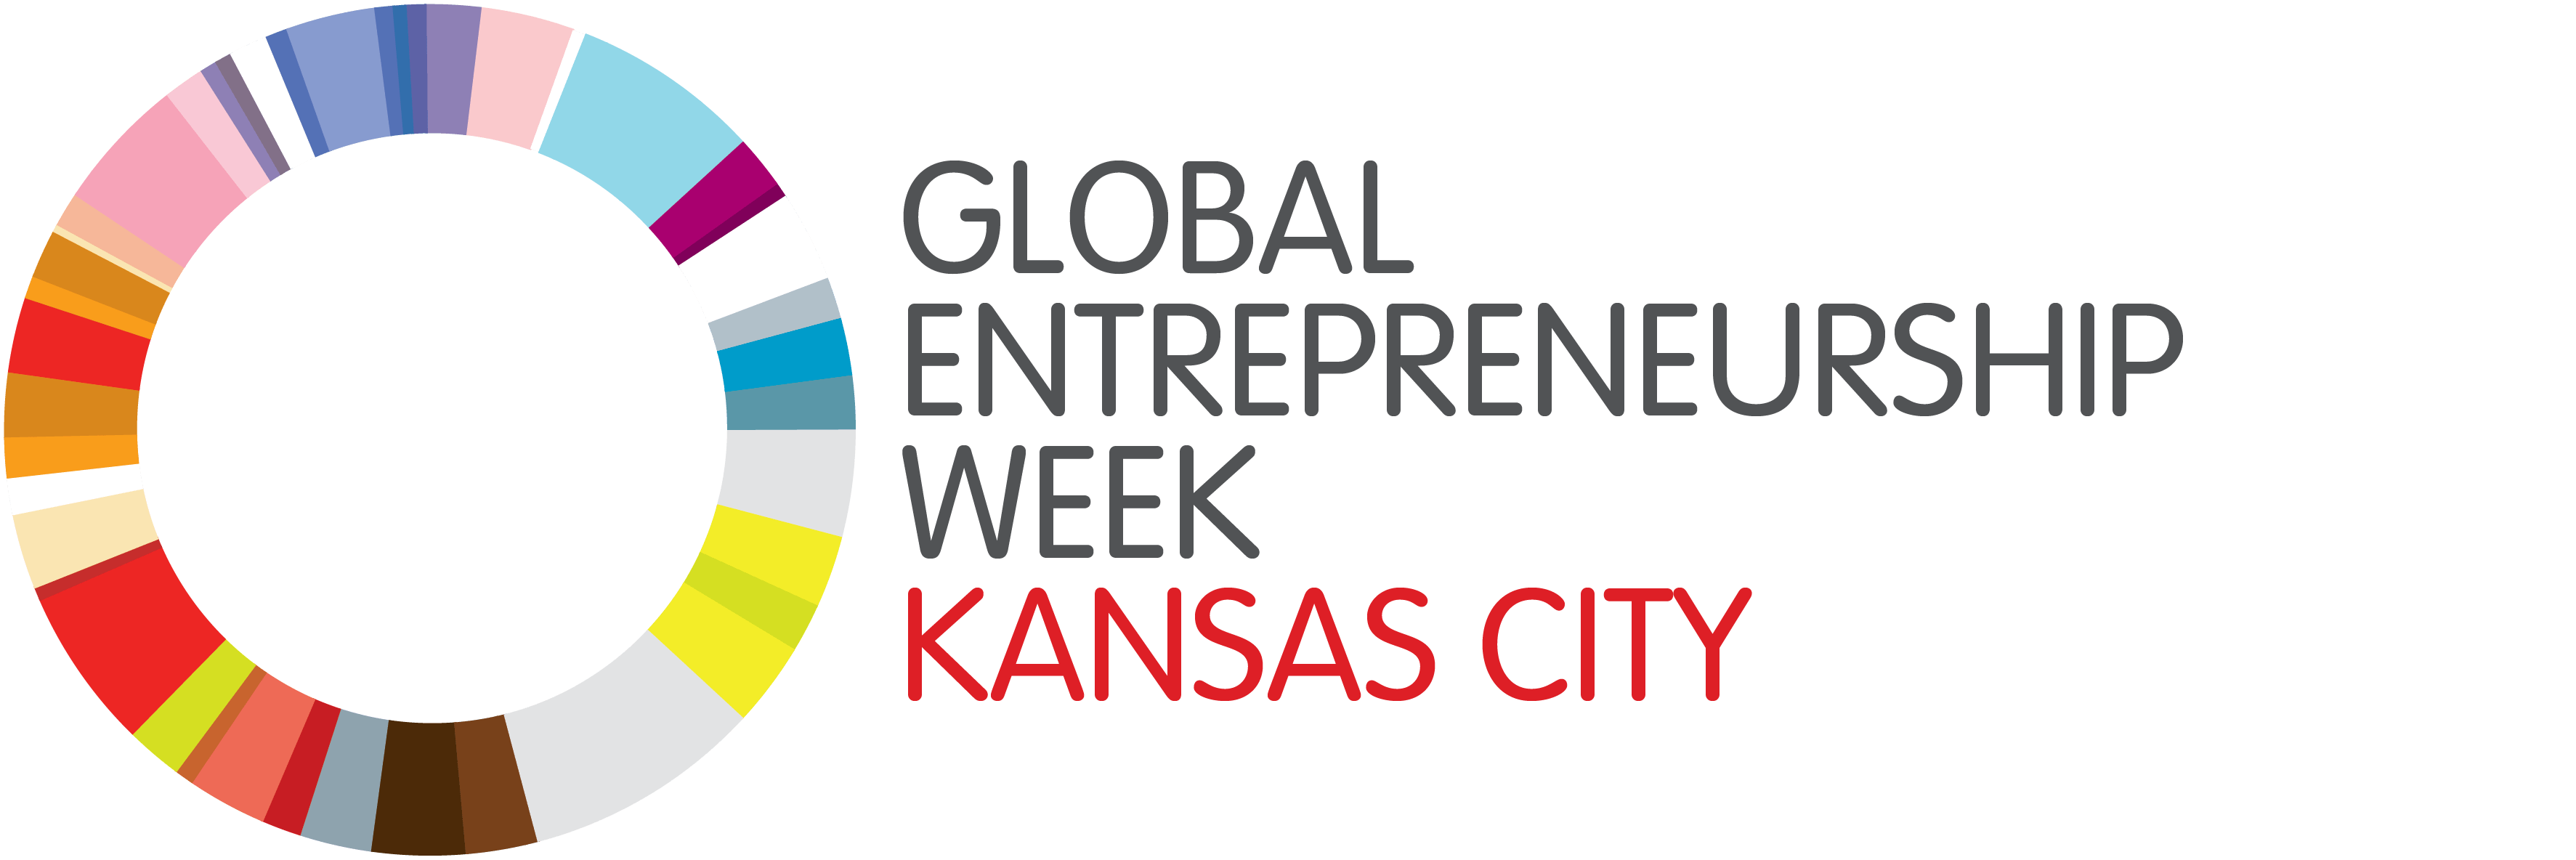 First Round of Events Announced for Global Entrepreneurship Week - Kansas City